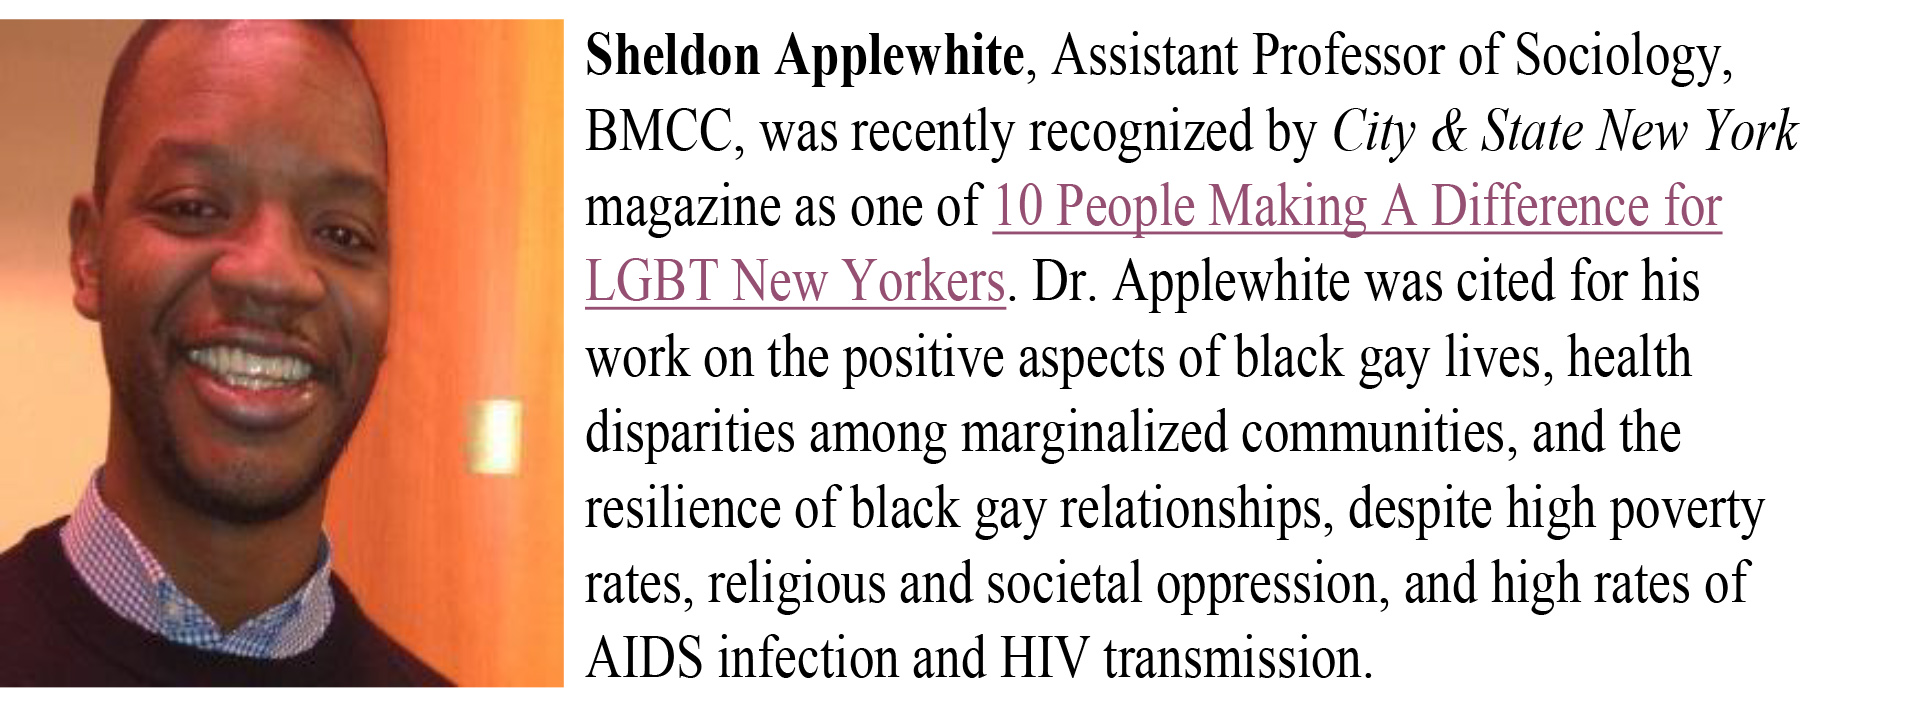 Assistant Professor, Sheldon Applewihte, Borough of Manhattan Community College